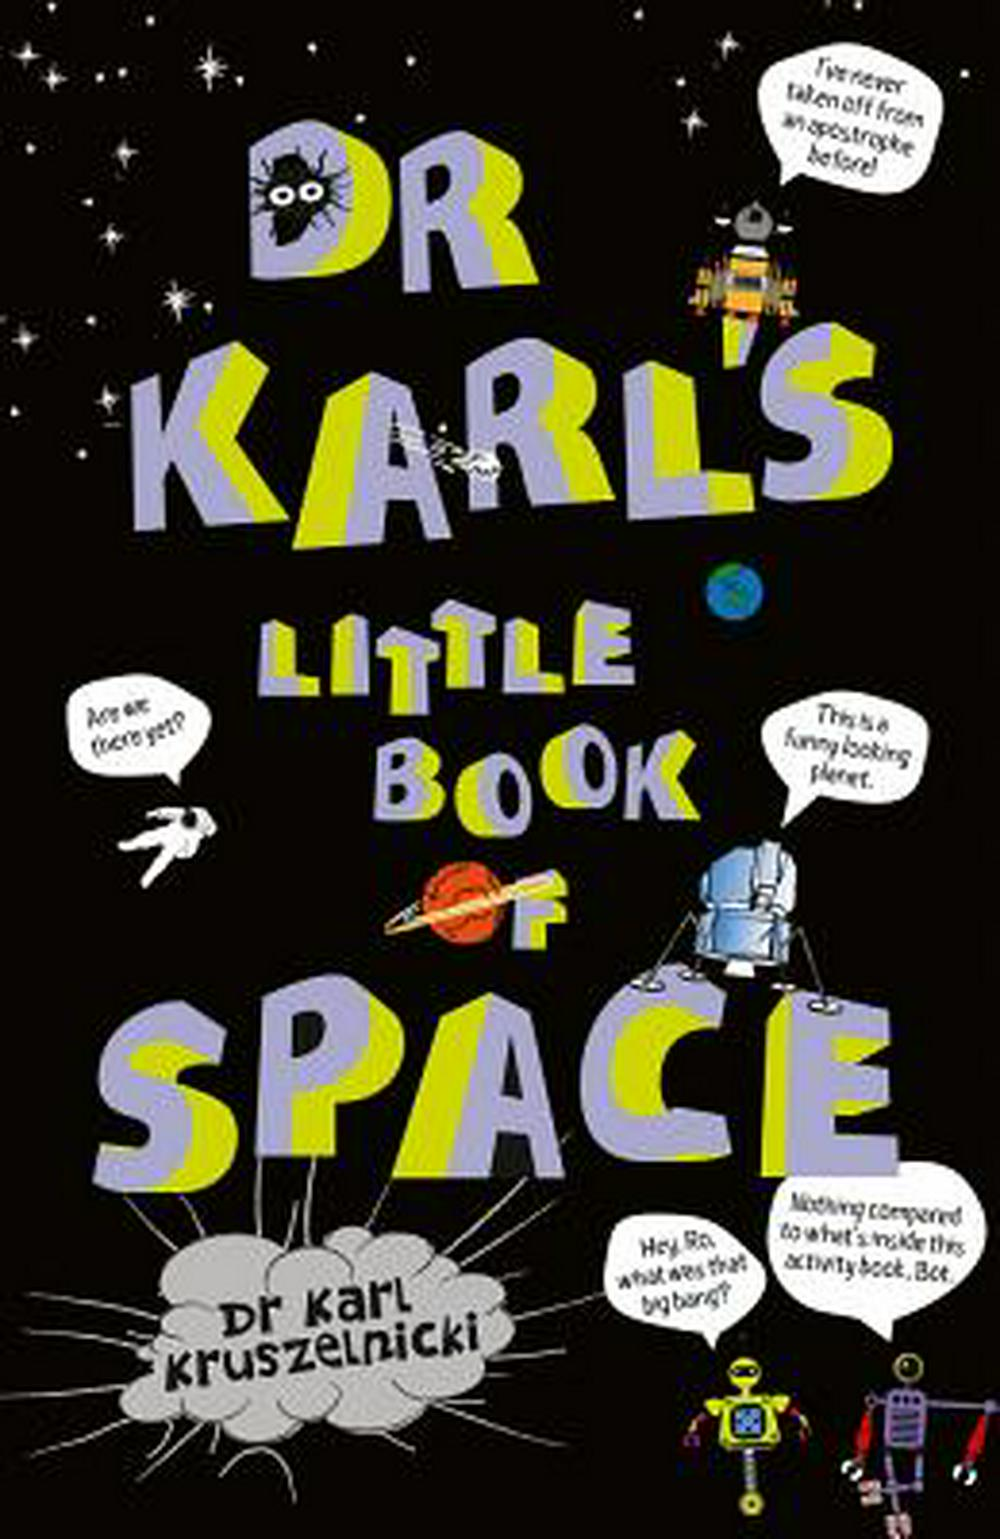 Dr Karl's Little Book of Space by Dr Karl Kruszelnicki, ISBN: 9781925481235